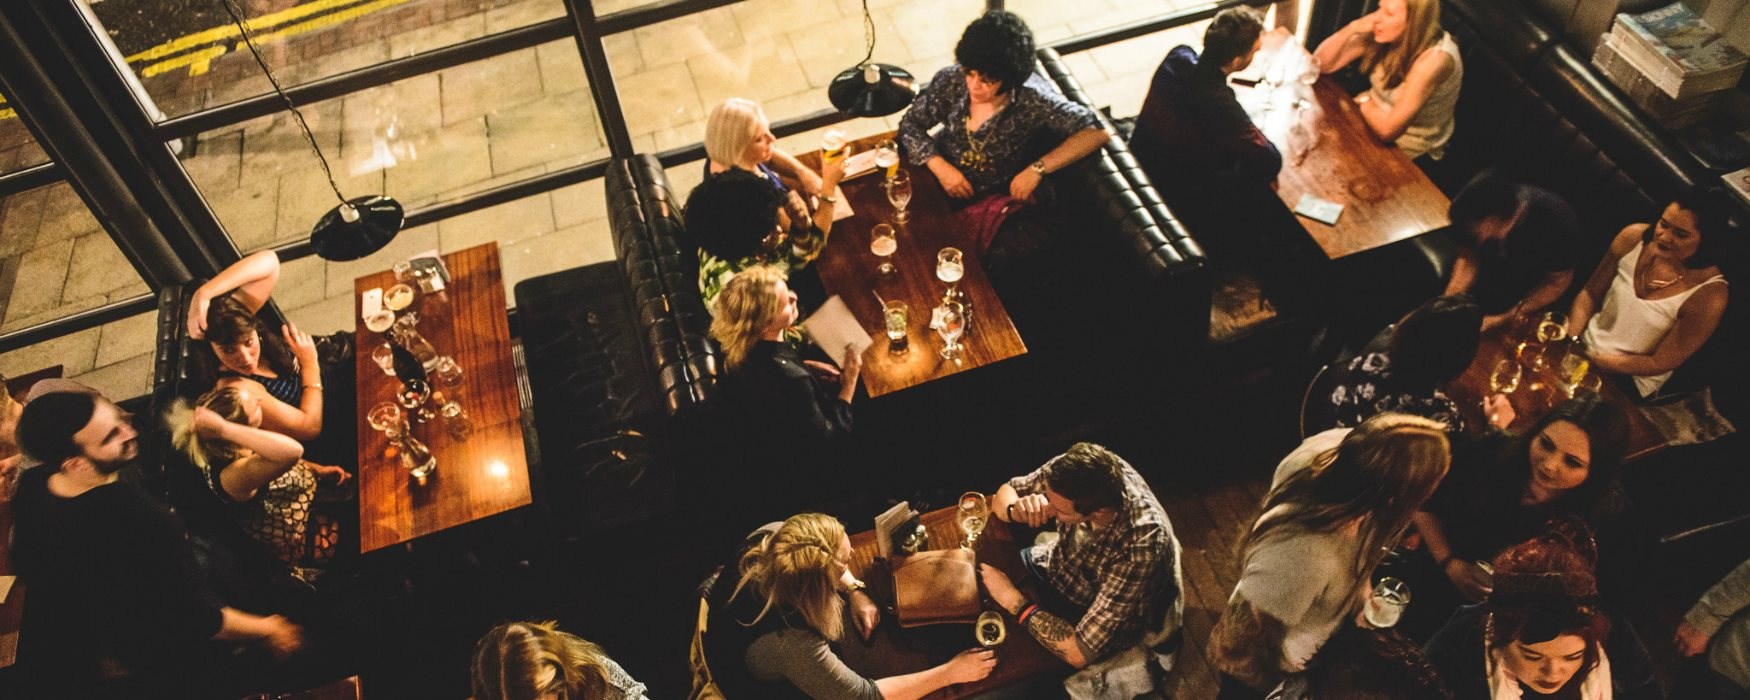 Pubs and Bars in Manchester